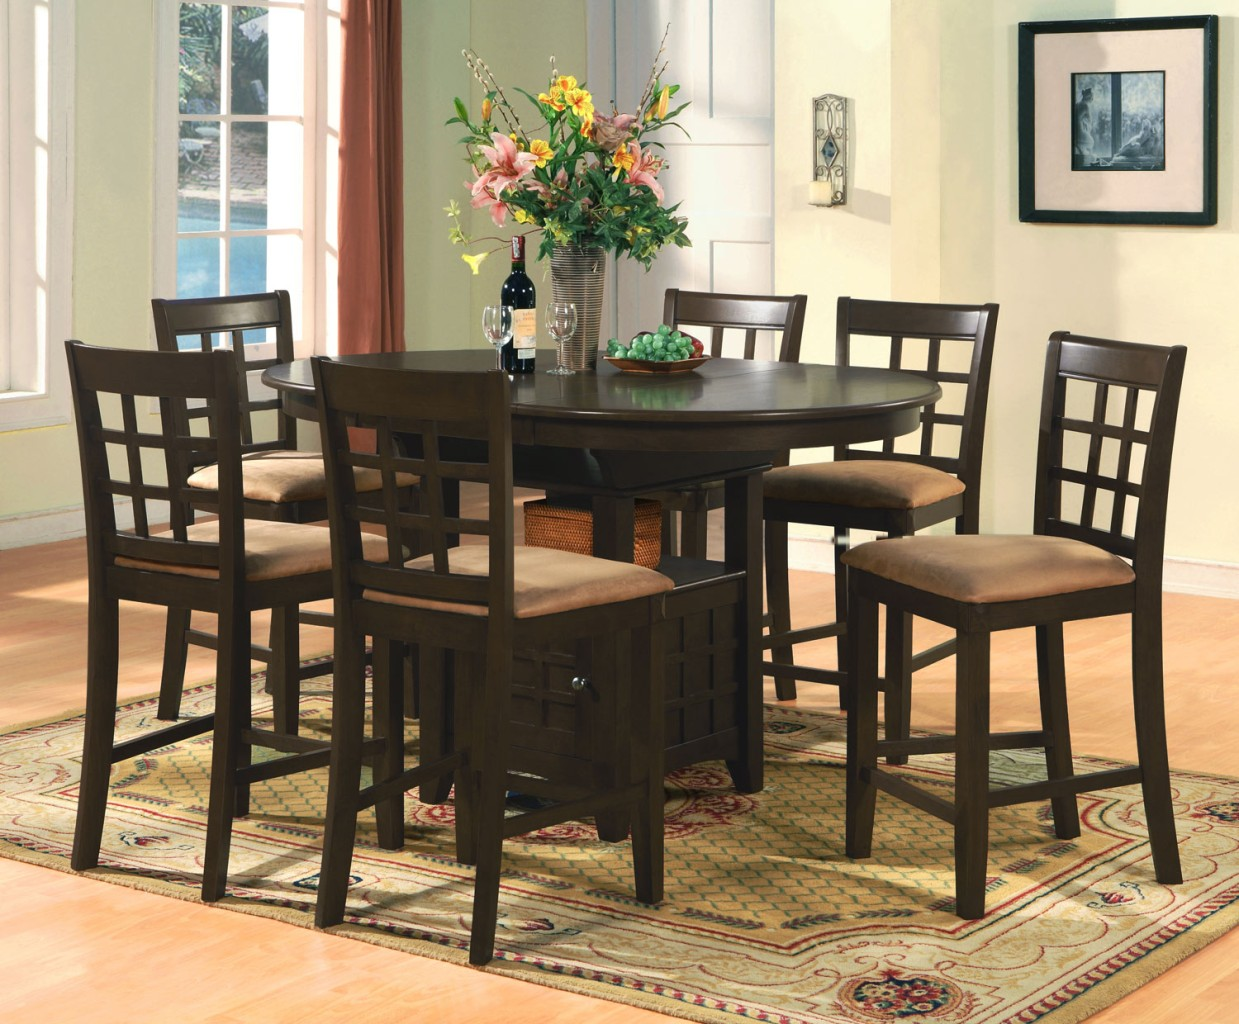 Bar Height Kitchen Table And Chairs Oval Counter Height Dining Set 7pc Table And 6 Bar Stools Ebay